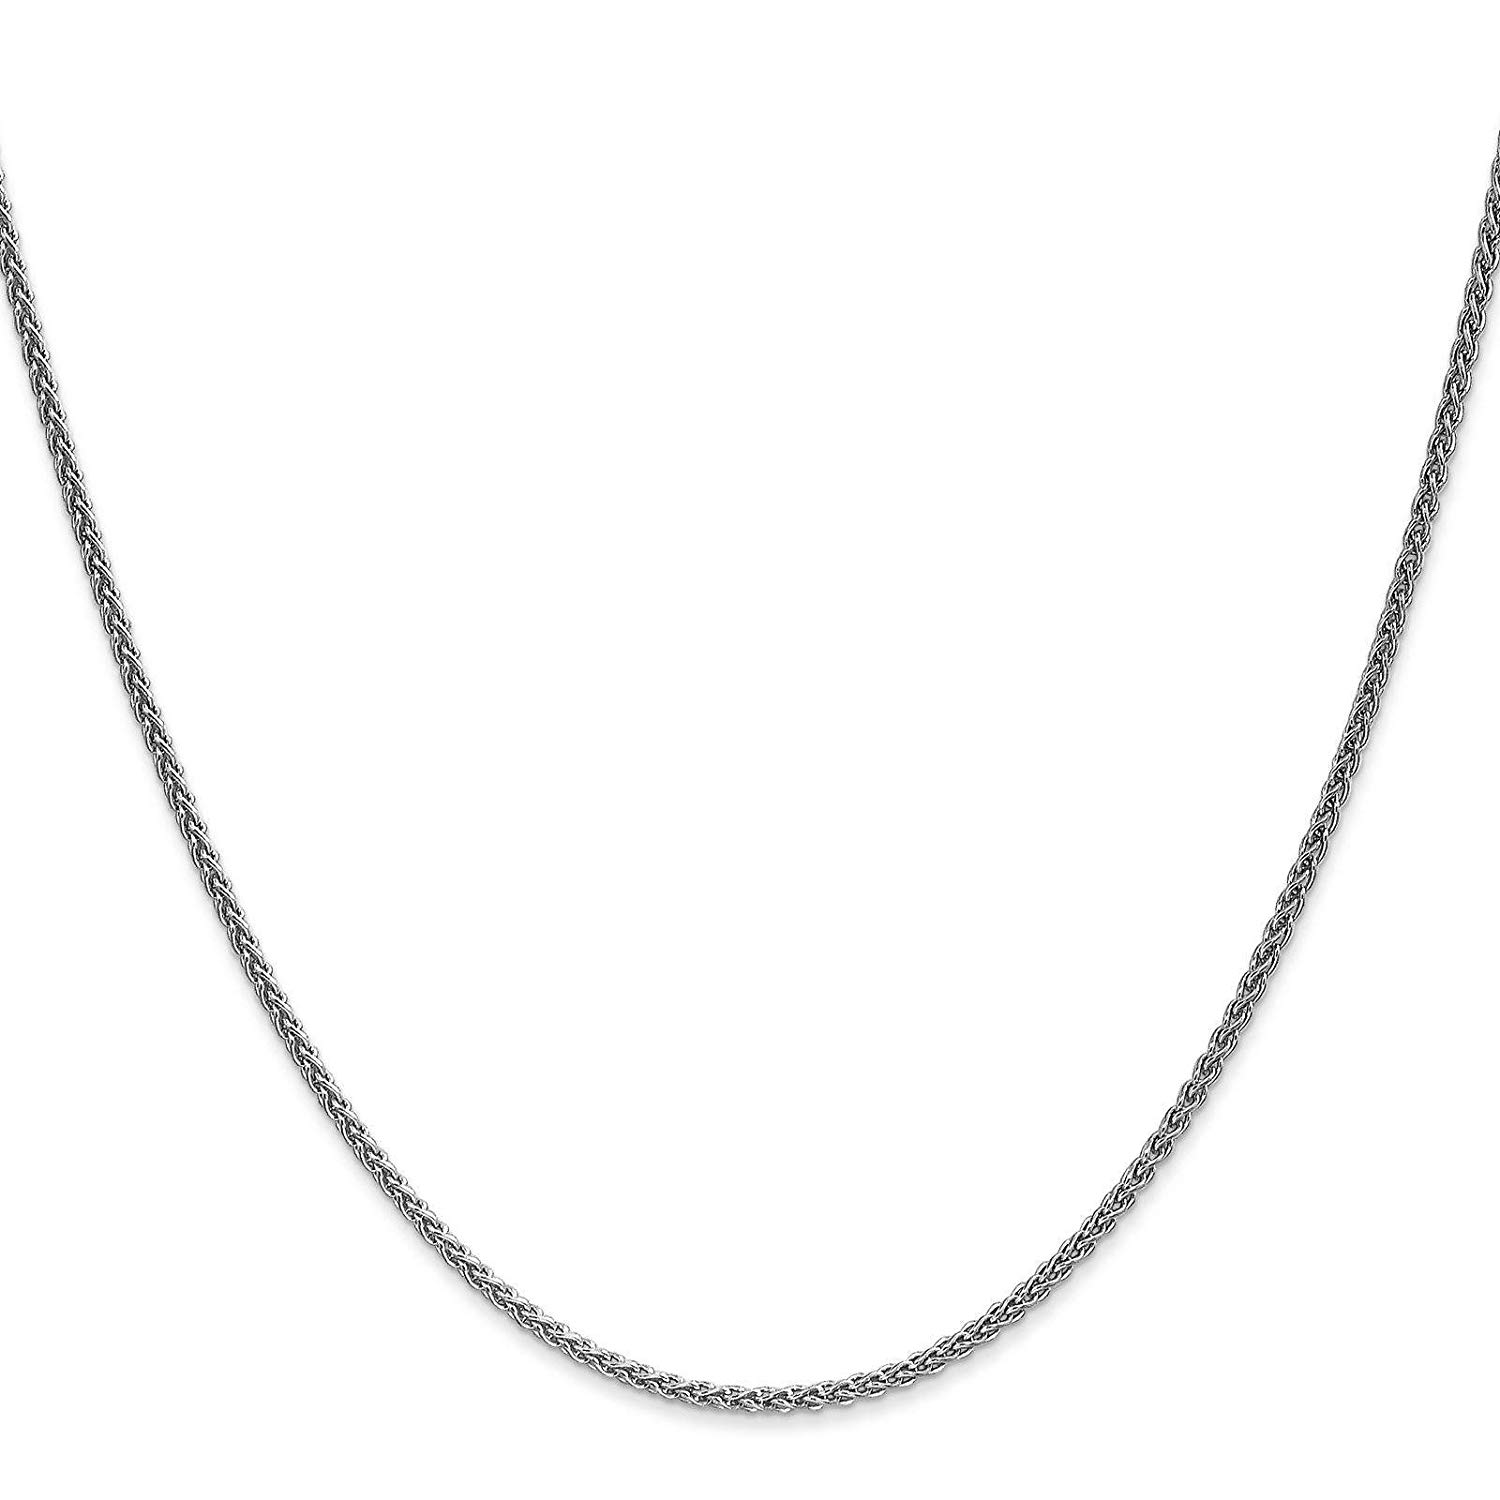 "14k White Gold 1.5mm Solid Polished Spiga Chain Necklace Bracelet Anklet 6"" - 30"""